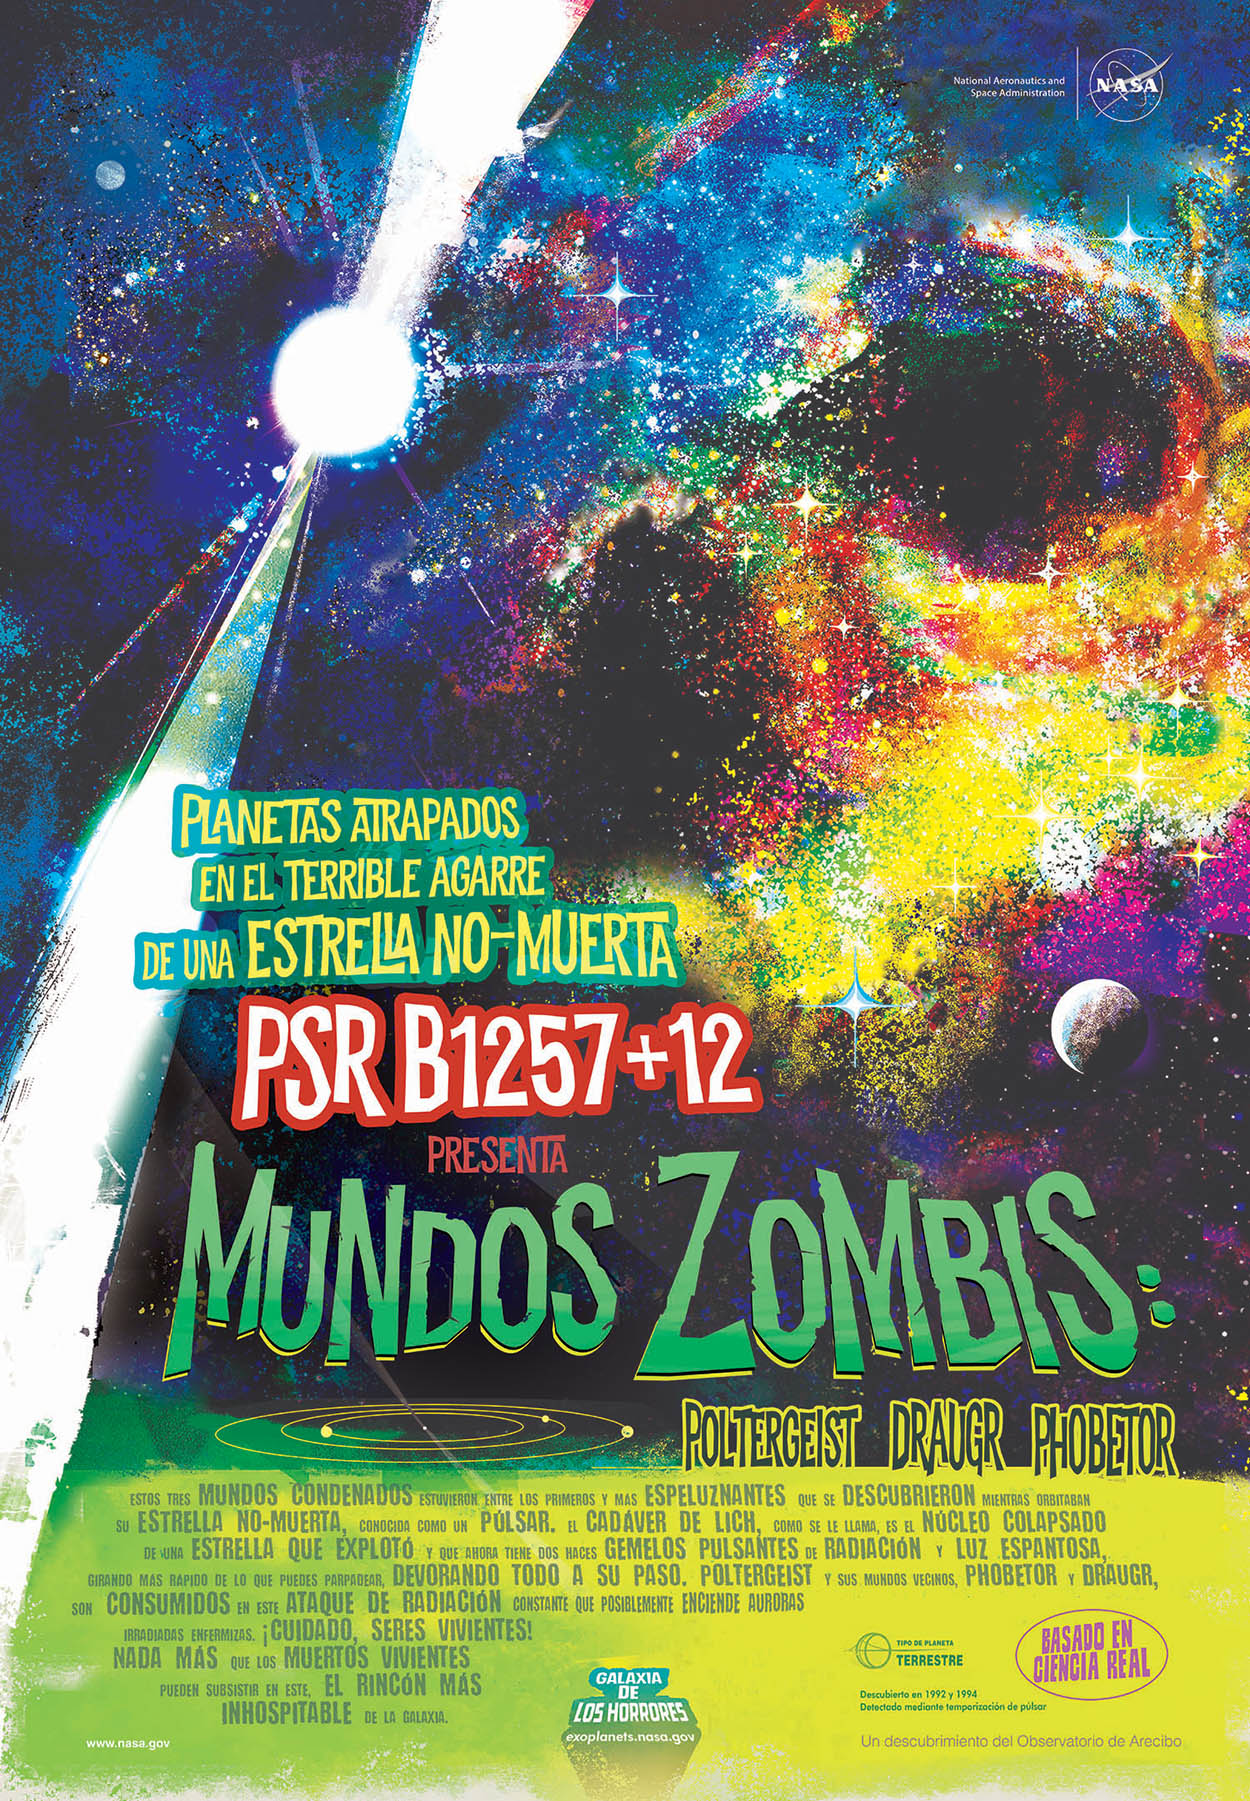 A poster done in the style of movie posters from the 1950s and 1960s showing the zombie worlds with a colorful nebula and a planet being blasted by twin beams of radiation by the pulsar host star. The overall image creates the look of a scary skull.